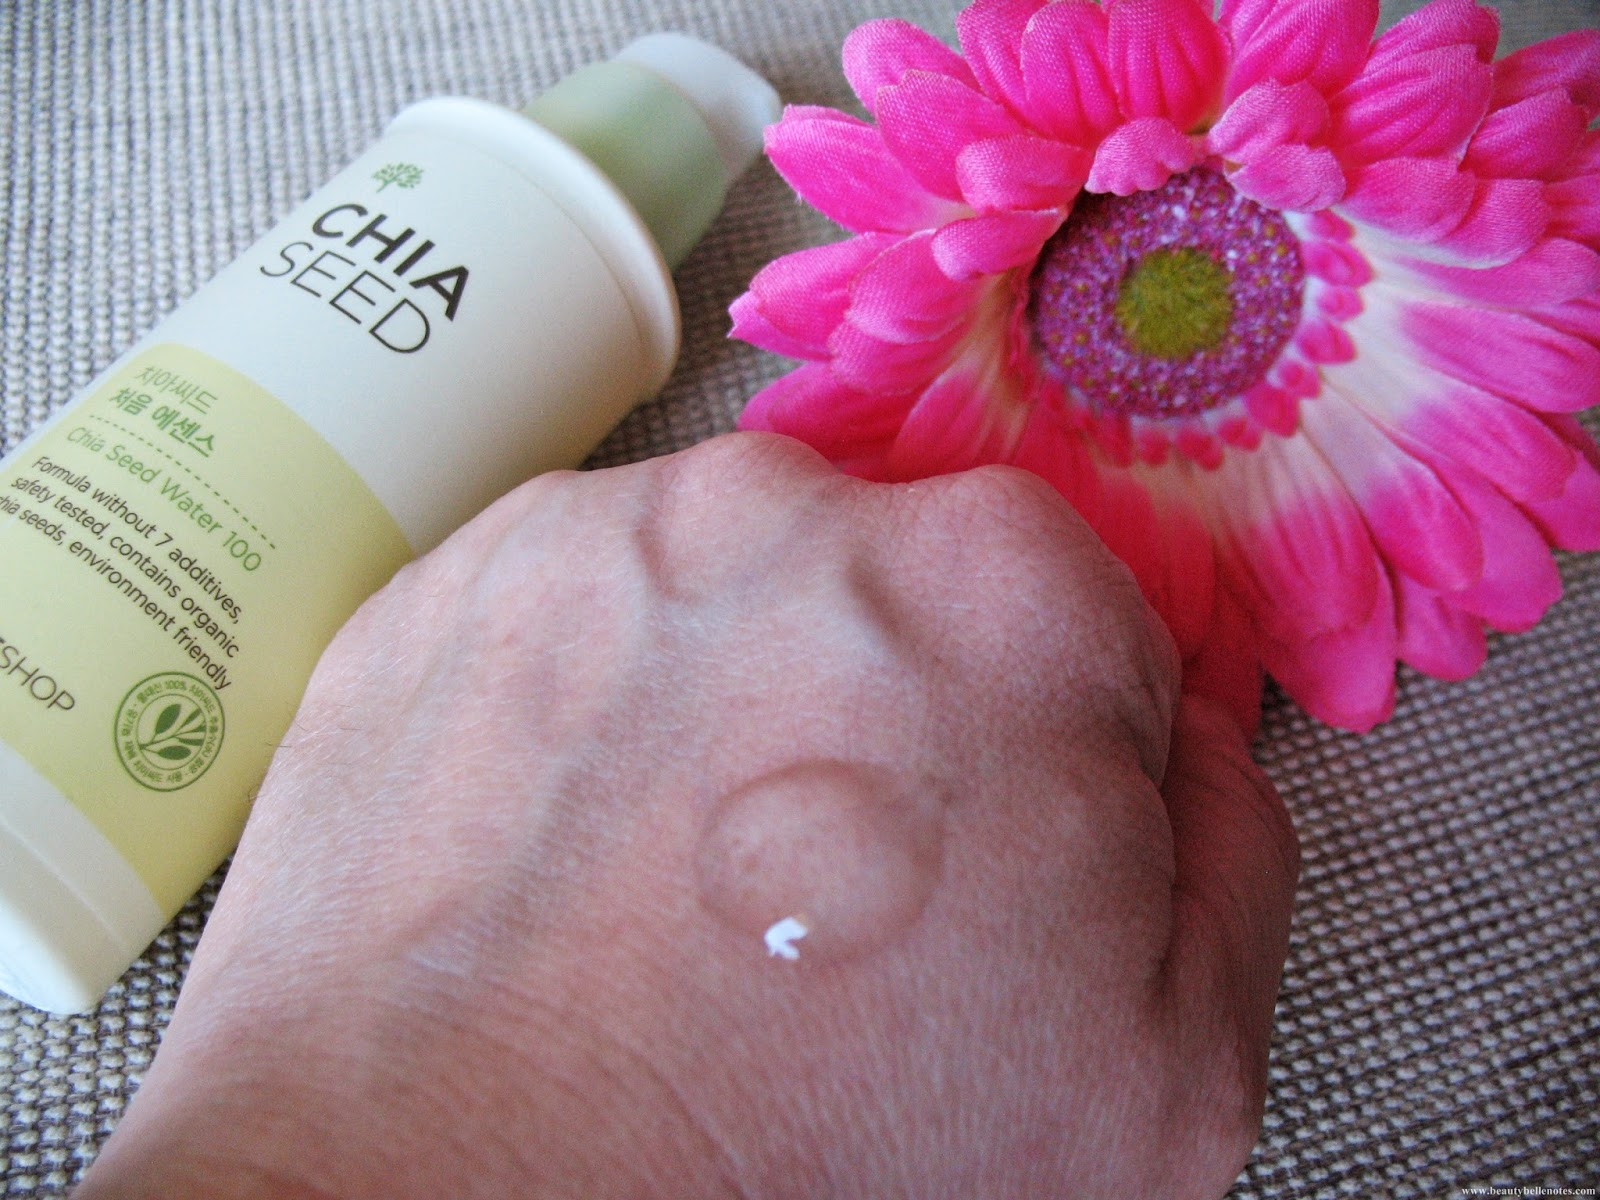 TheFaceShop - Chia Seed Boosting Essence review and photos